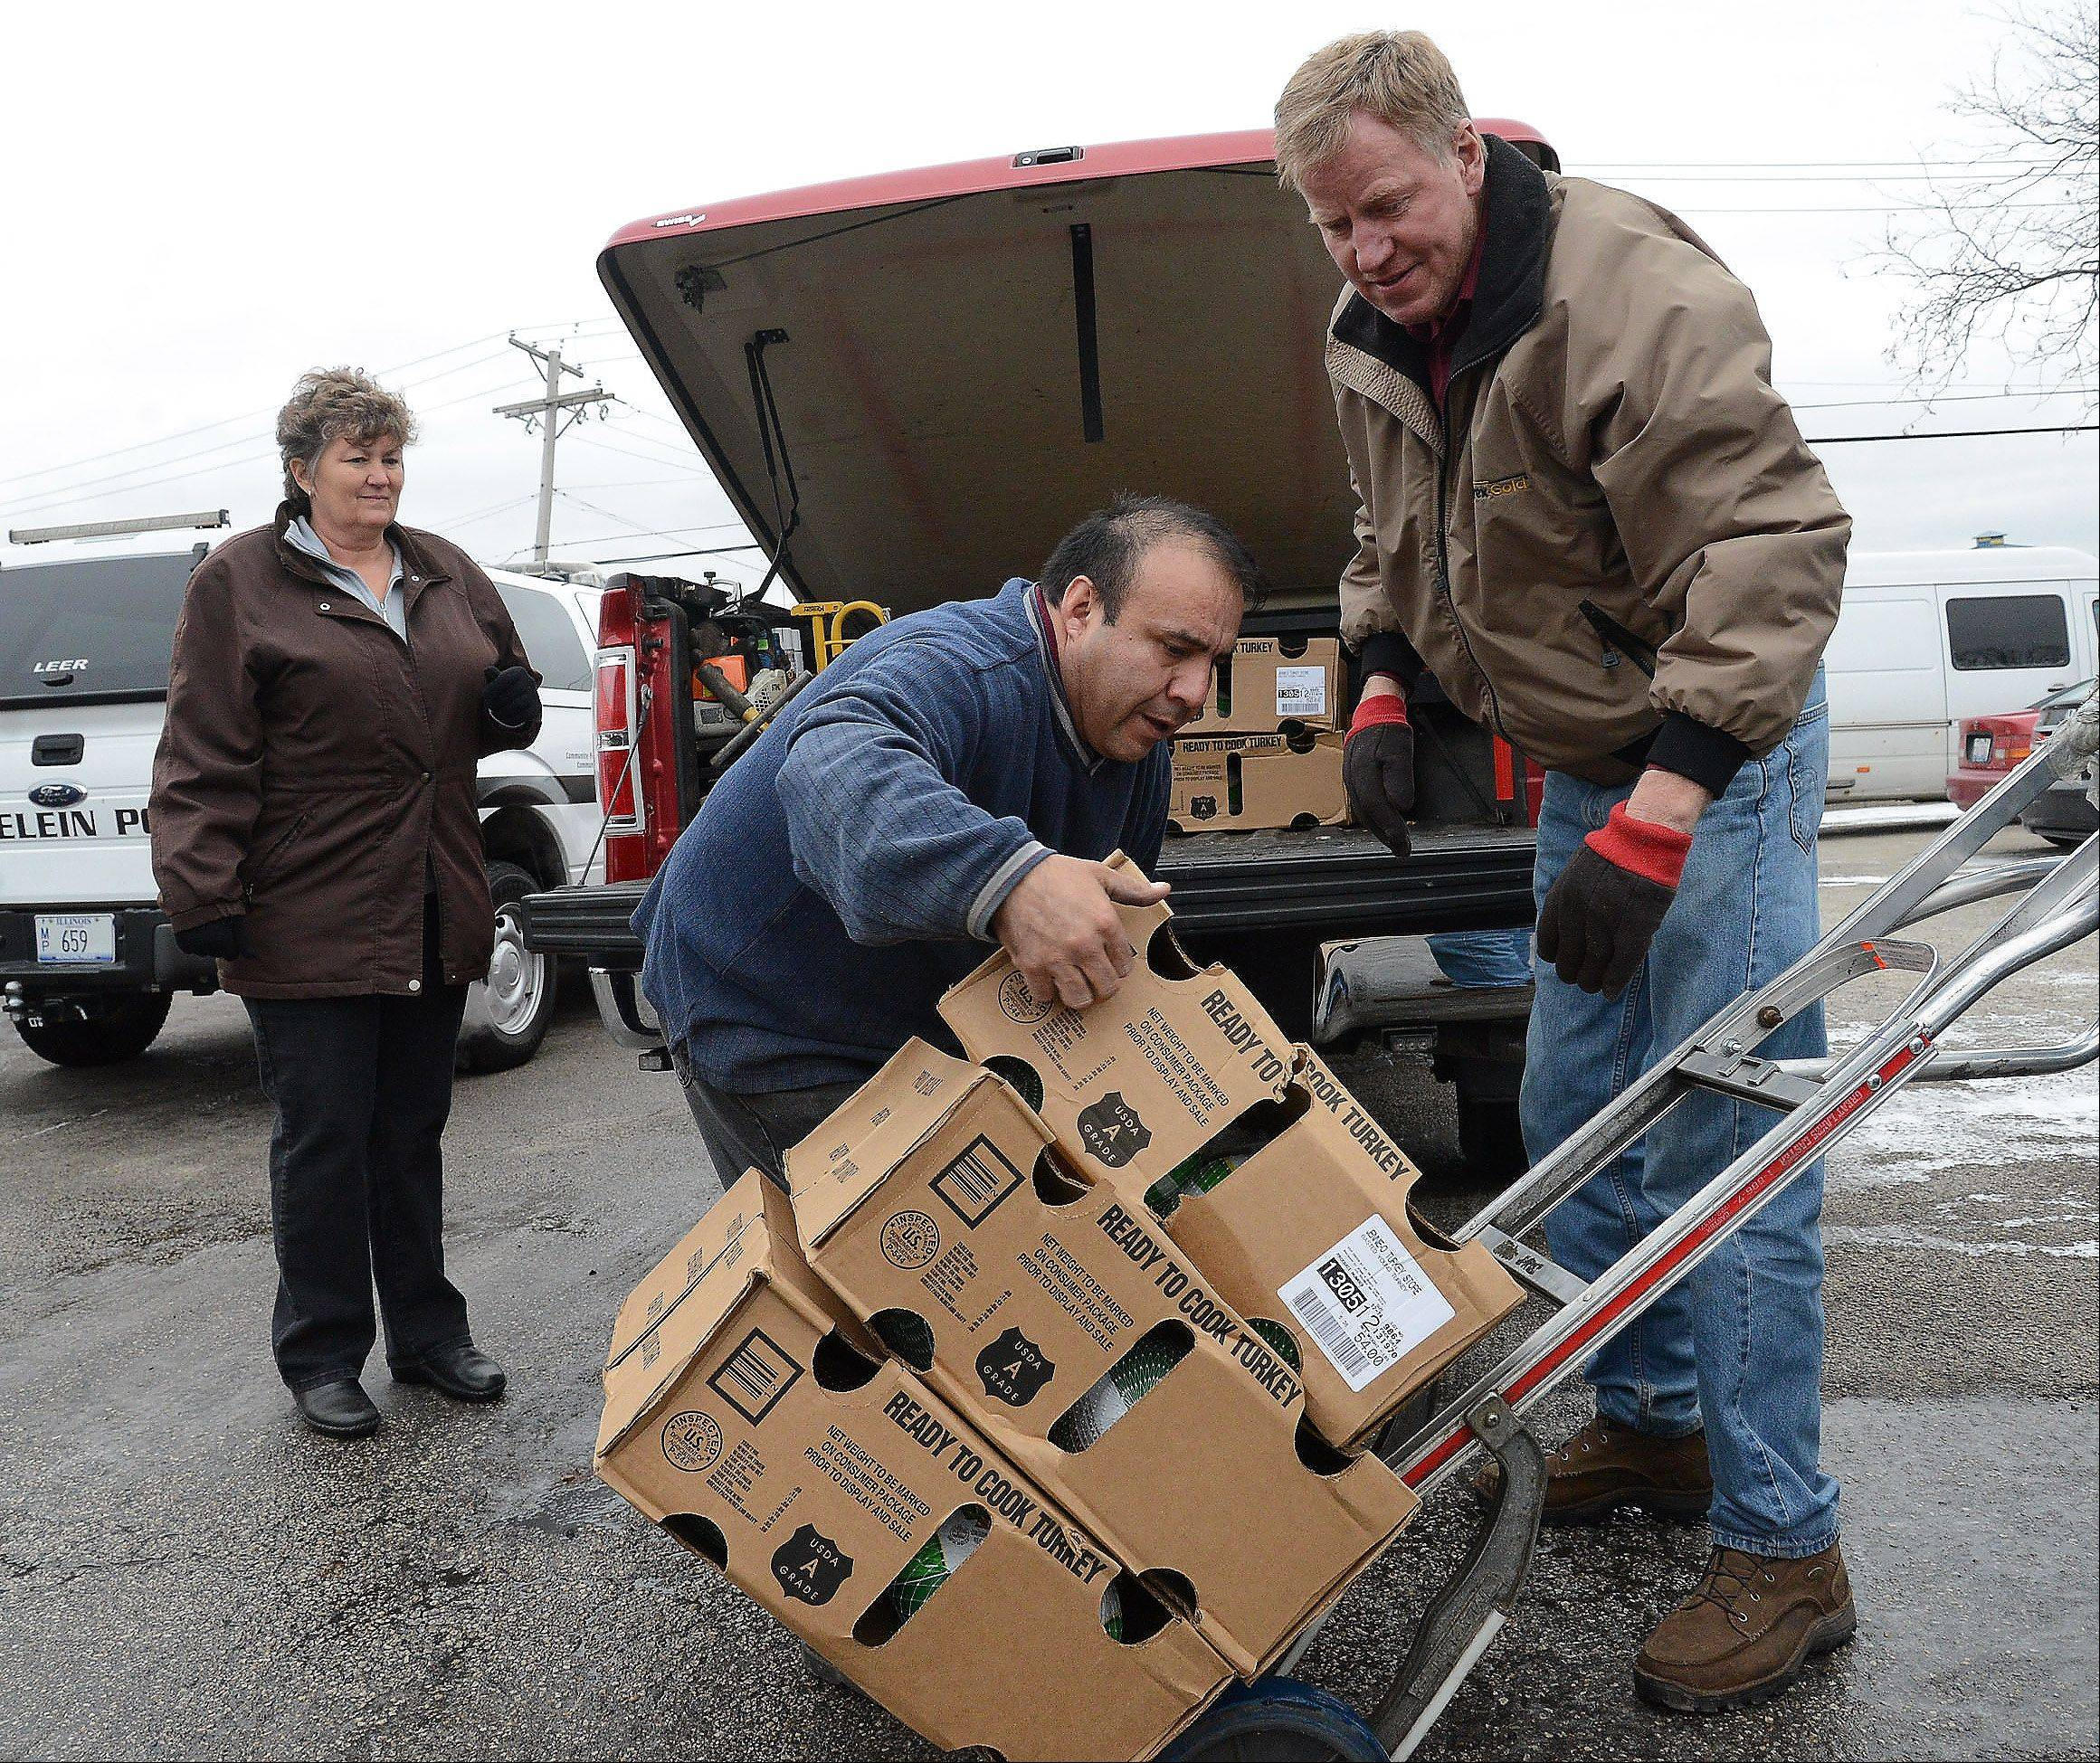 Bob Chwedyk/bchwedyk@dailyherald.comFremont Township Highway Commissioner Bill Grinnell, right, is helped by Jose Mendoza of Elly's Pancake House to load turkeys into his vehicle for the Fremont Township Food Pantry. Fremont Township joined the Mundelein Police Department and Elly's on Tuesday to provide Thanksgiving meals to local families in need.